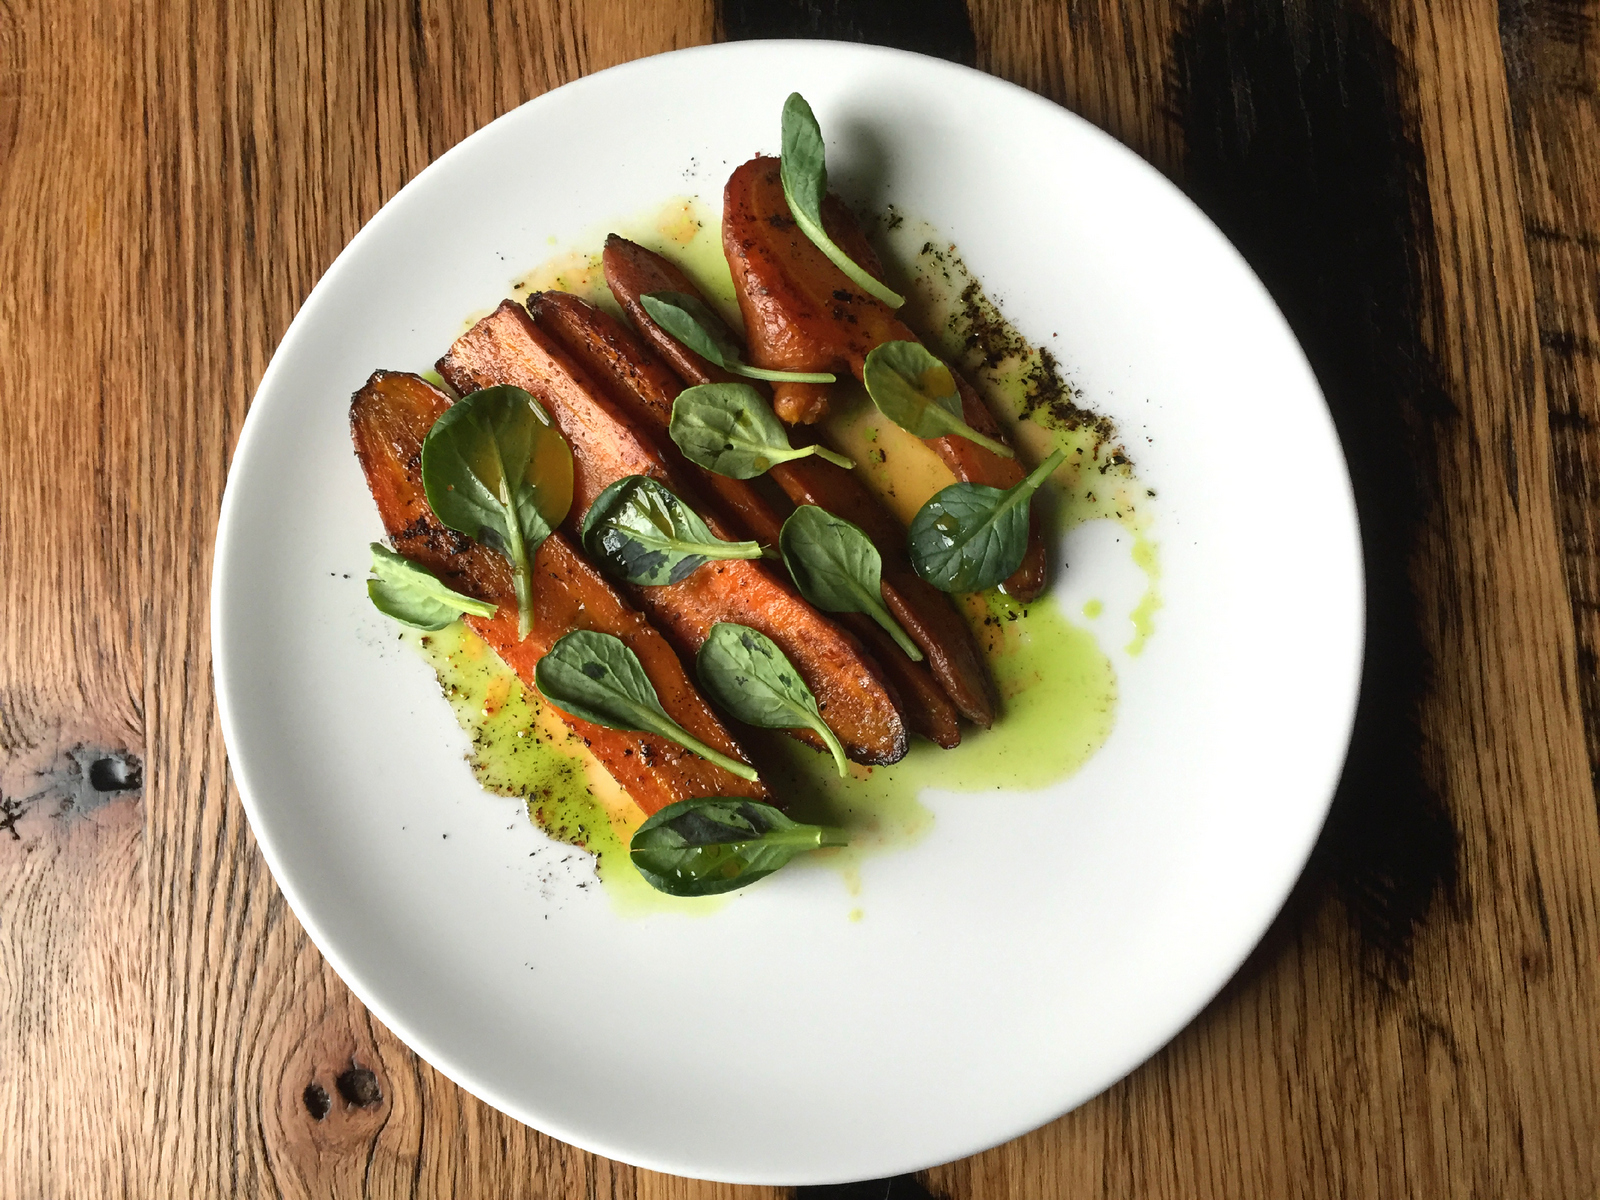 Chicory roasted carrots with chicory vinegar, carrot juice, tarragon oil, and tatsoi greens is one of Toutant chef de cuisine Joseph Fenush's inspired vegetable dishes. (Christa Glennie Seychew/Special to The News)